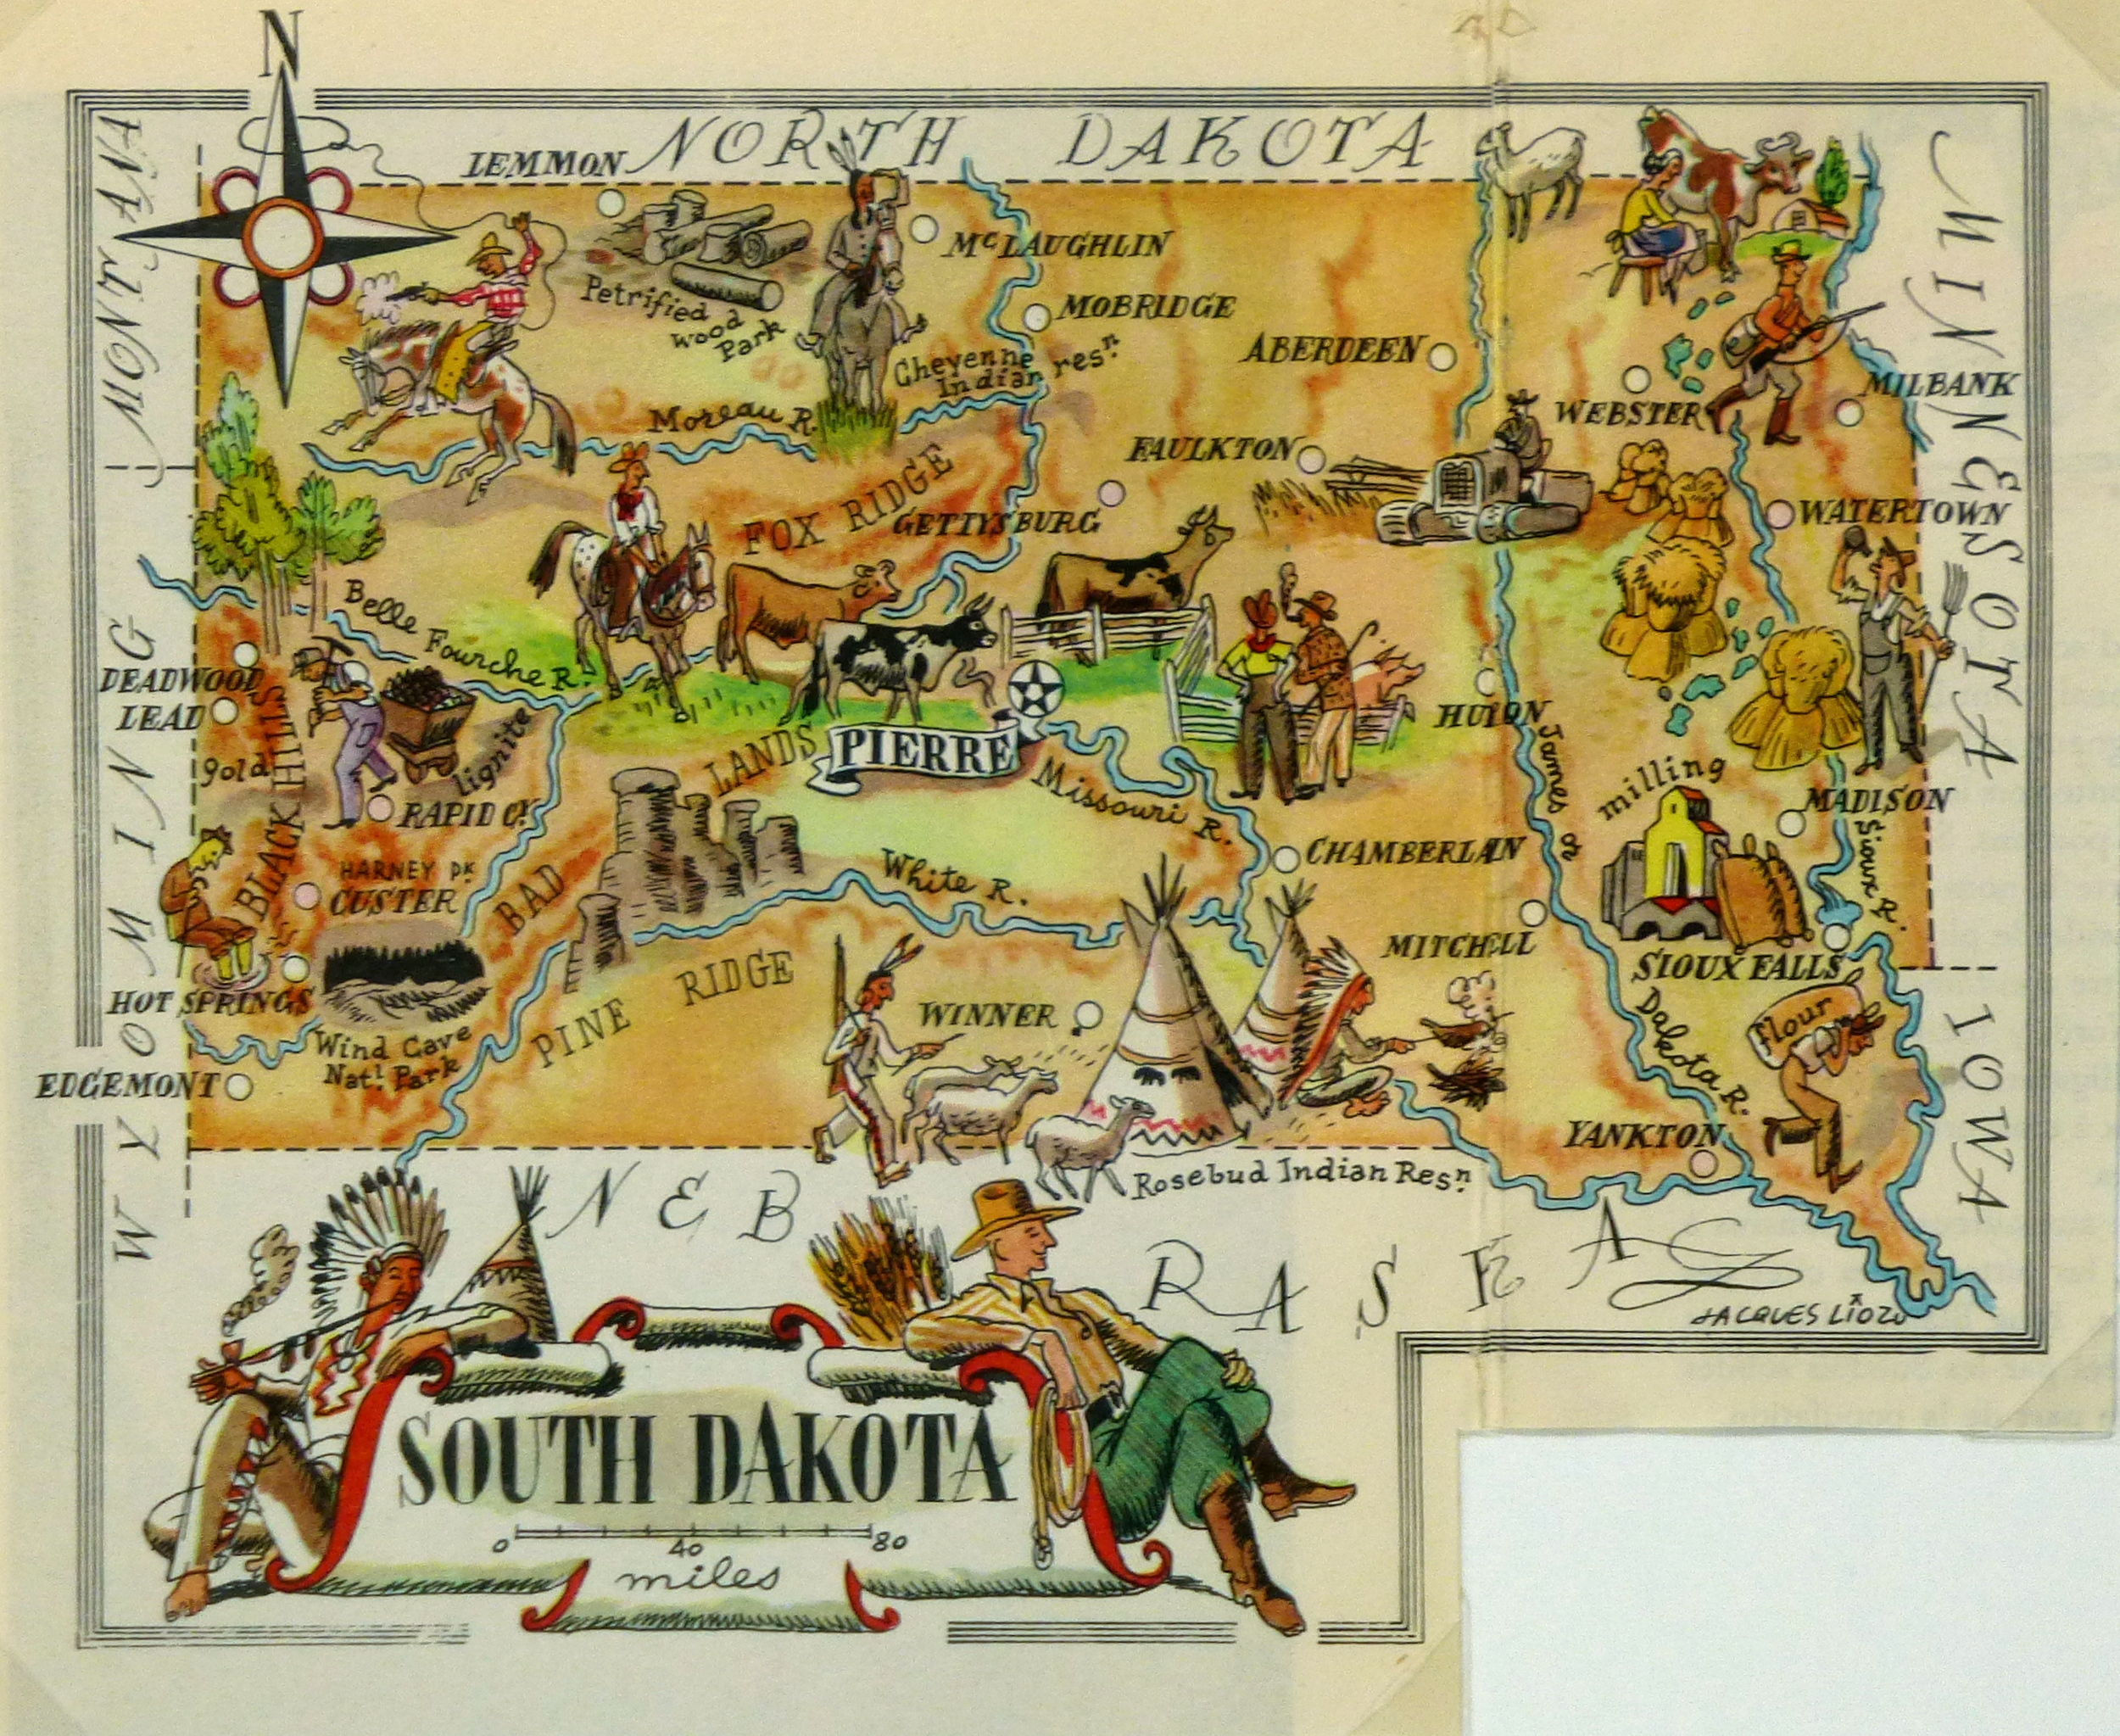 South Dakota Pictorial Map 1946